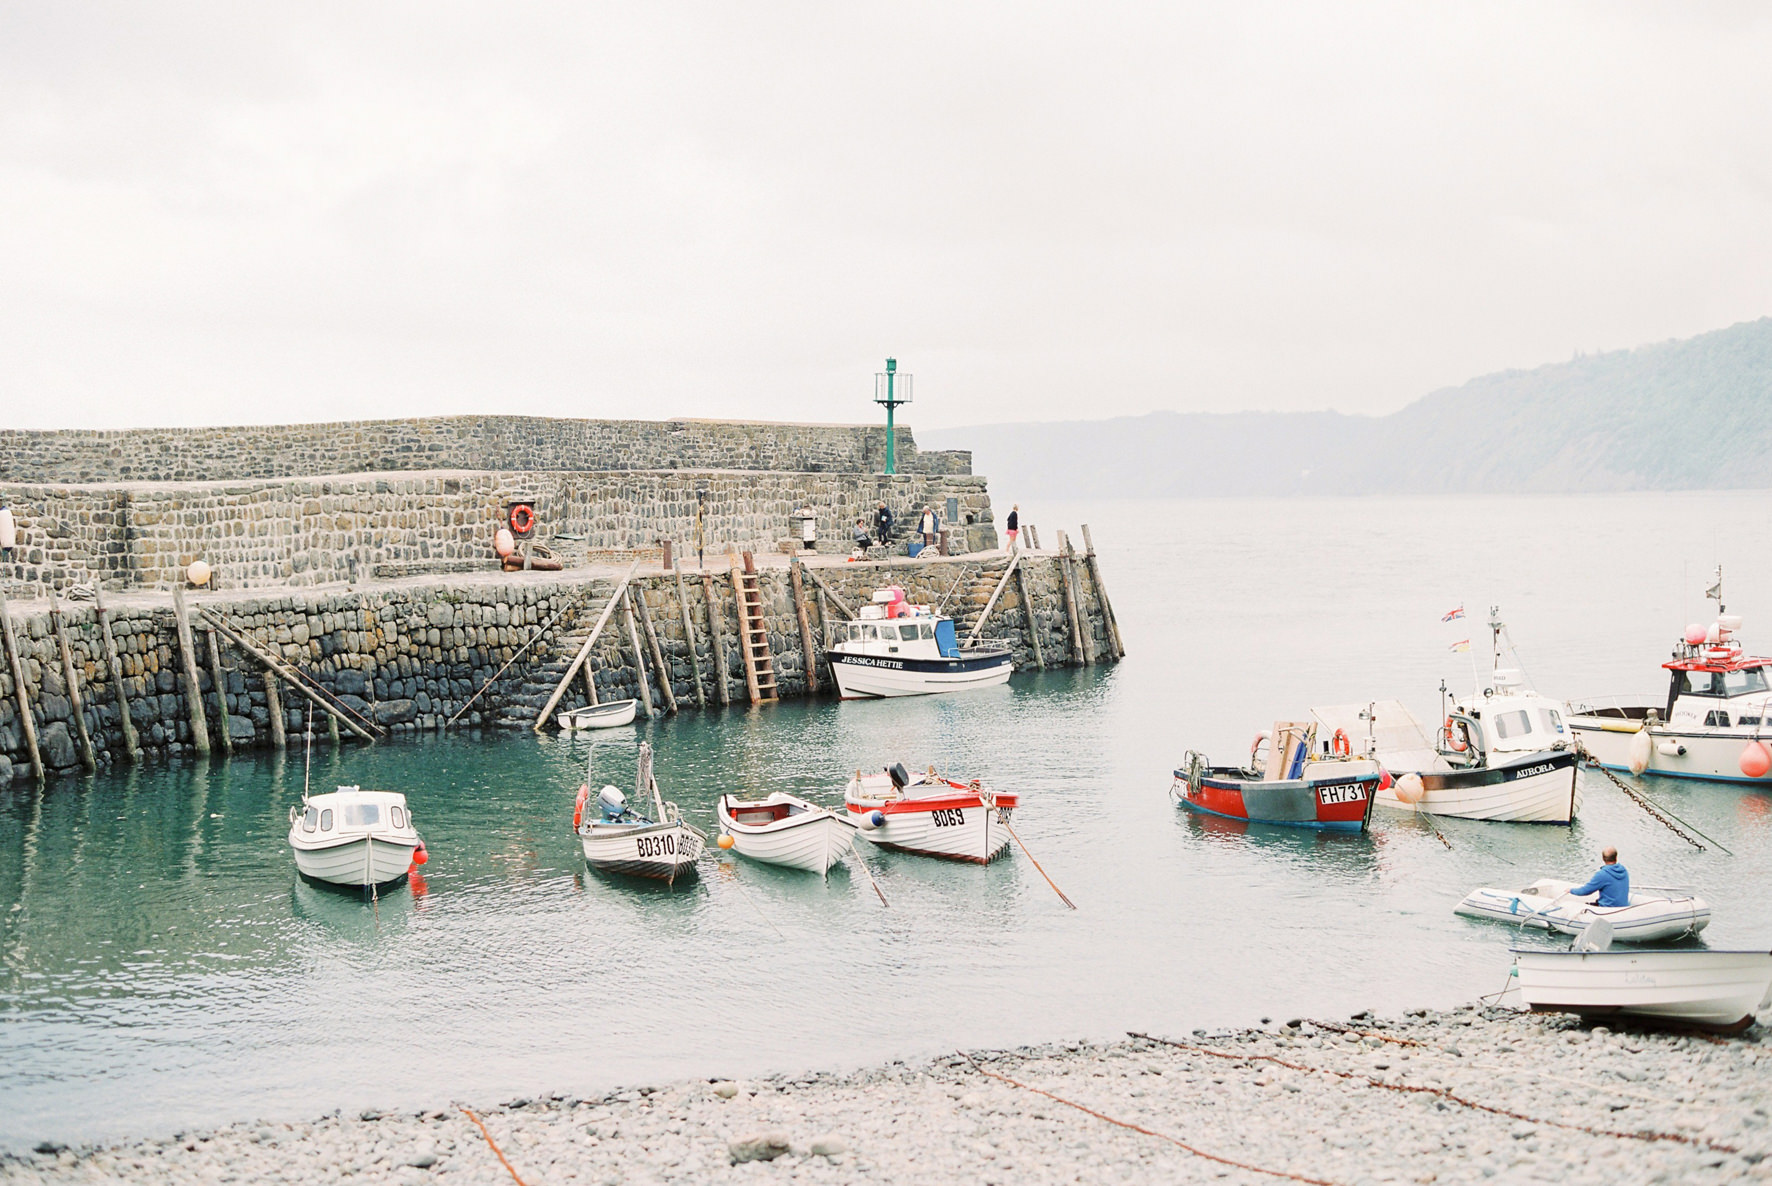 Lucy Davenport Photography, Sirens Song, Clovelly, coastal wedding venue, seaside, boats, sea, fishermen